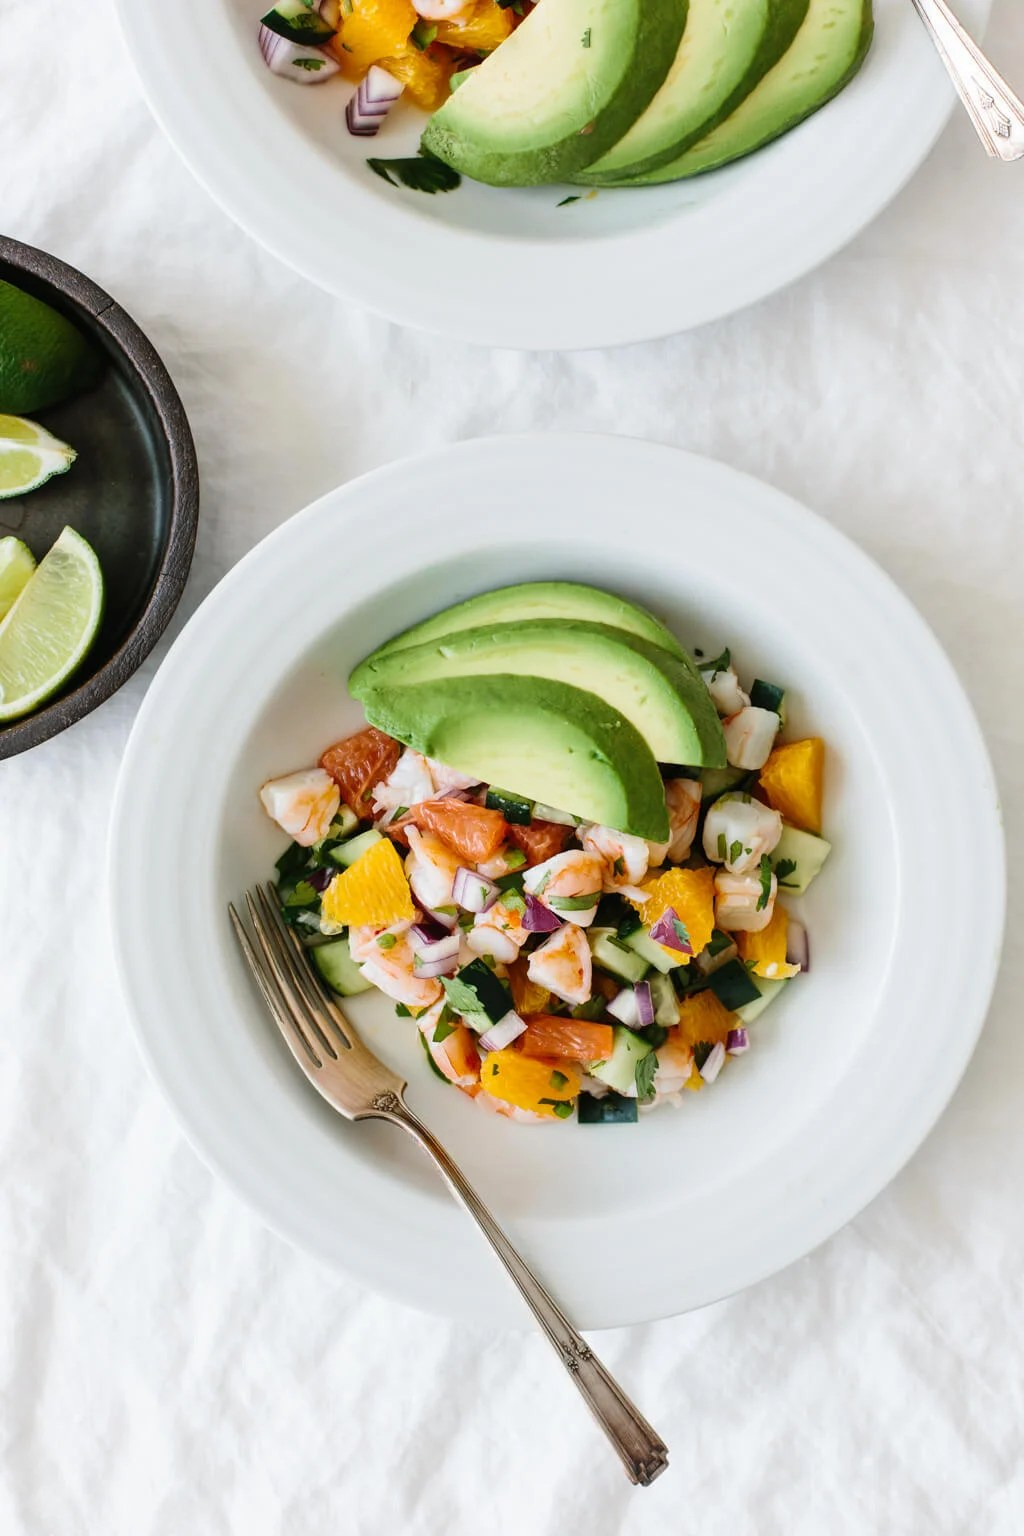 Shrimp ceviche in a white bowl and topped with avocado.